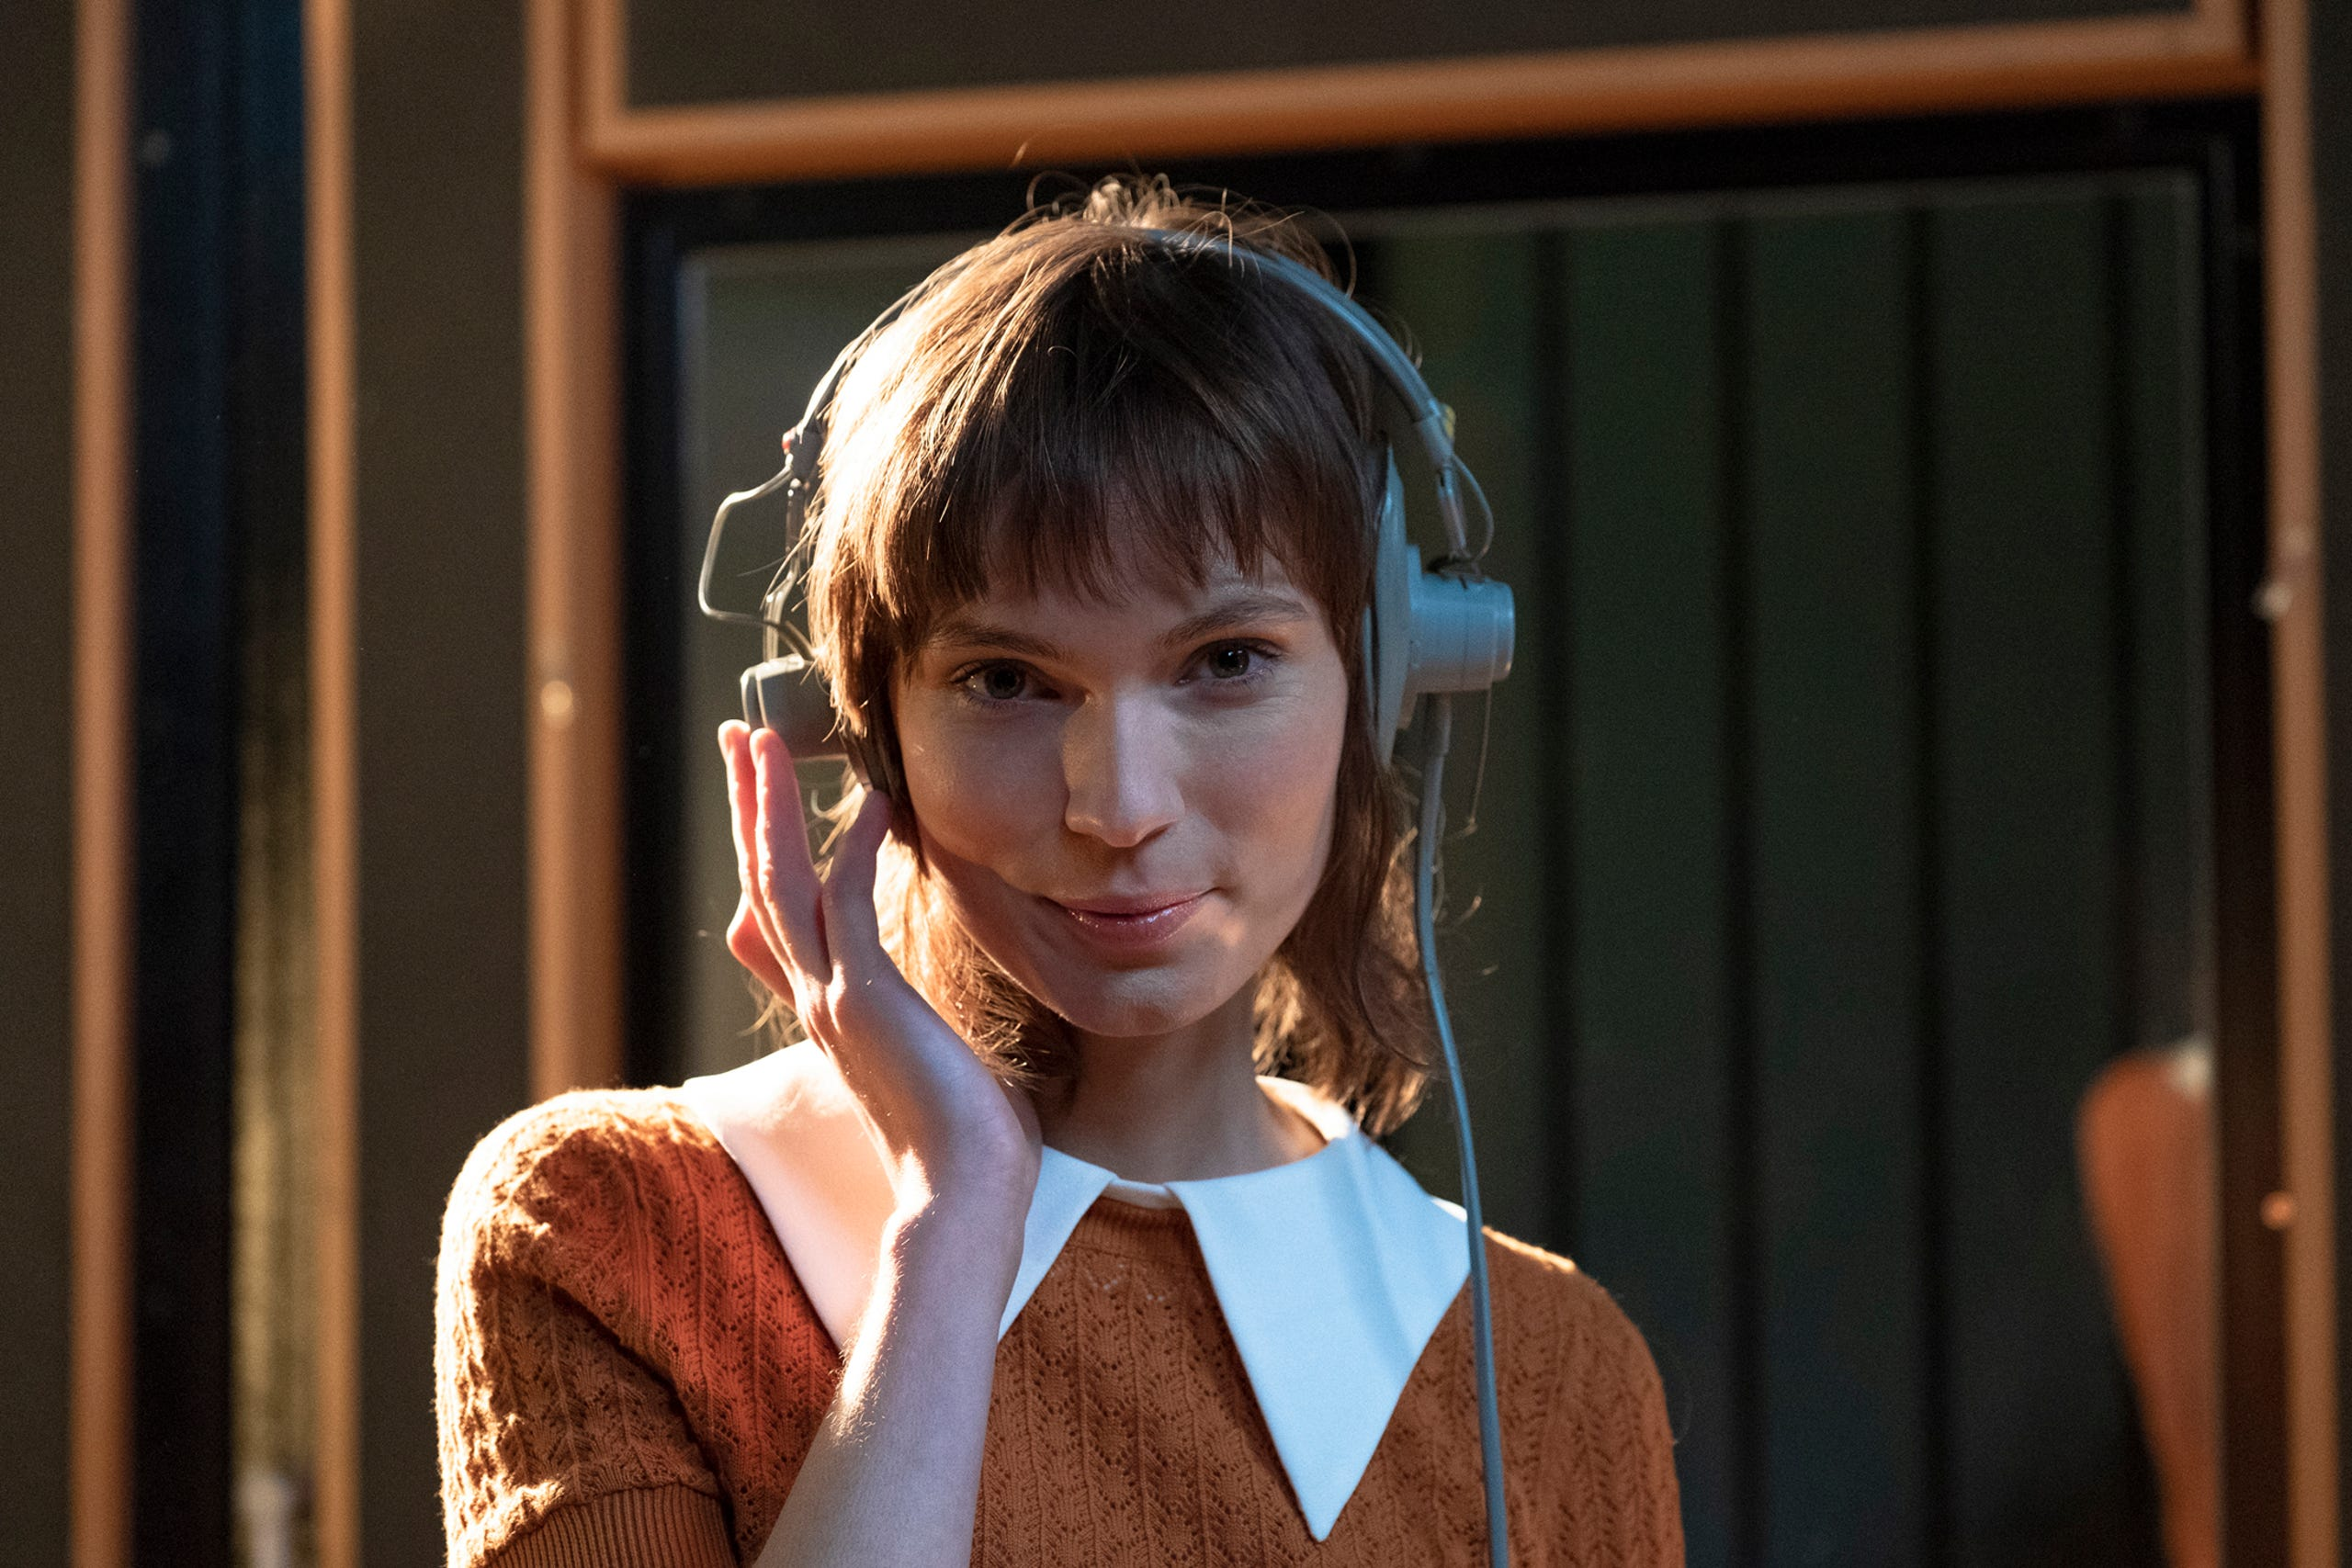 Tilda Cobham-Hervey stars in Helen Reddy biopic 'I Am Woman'